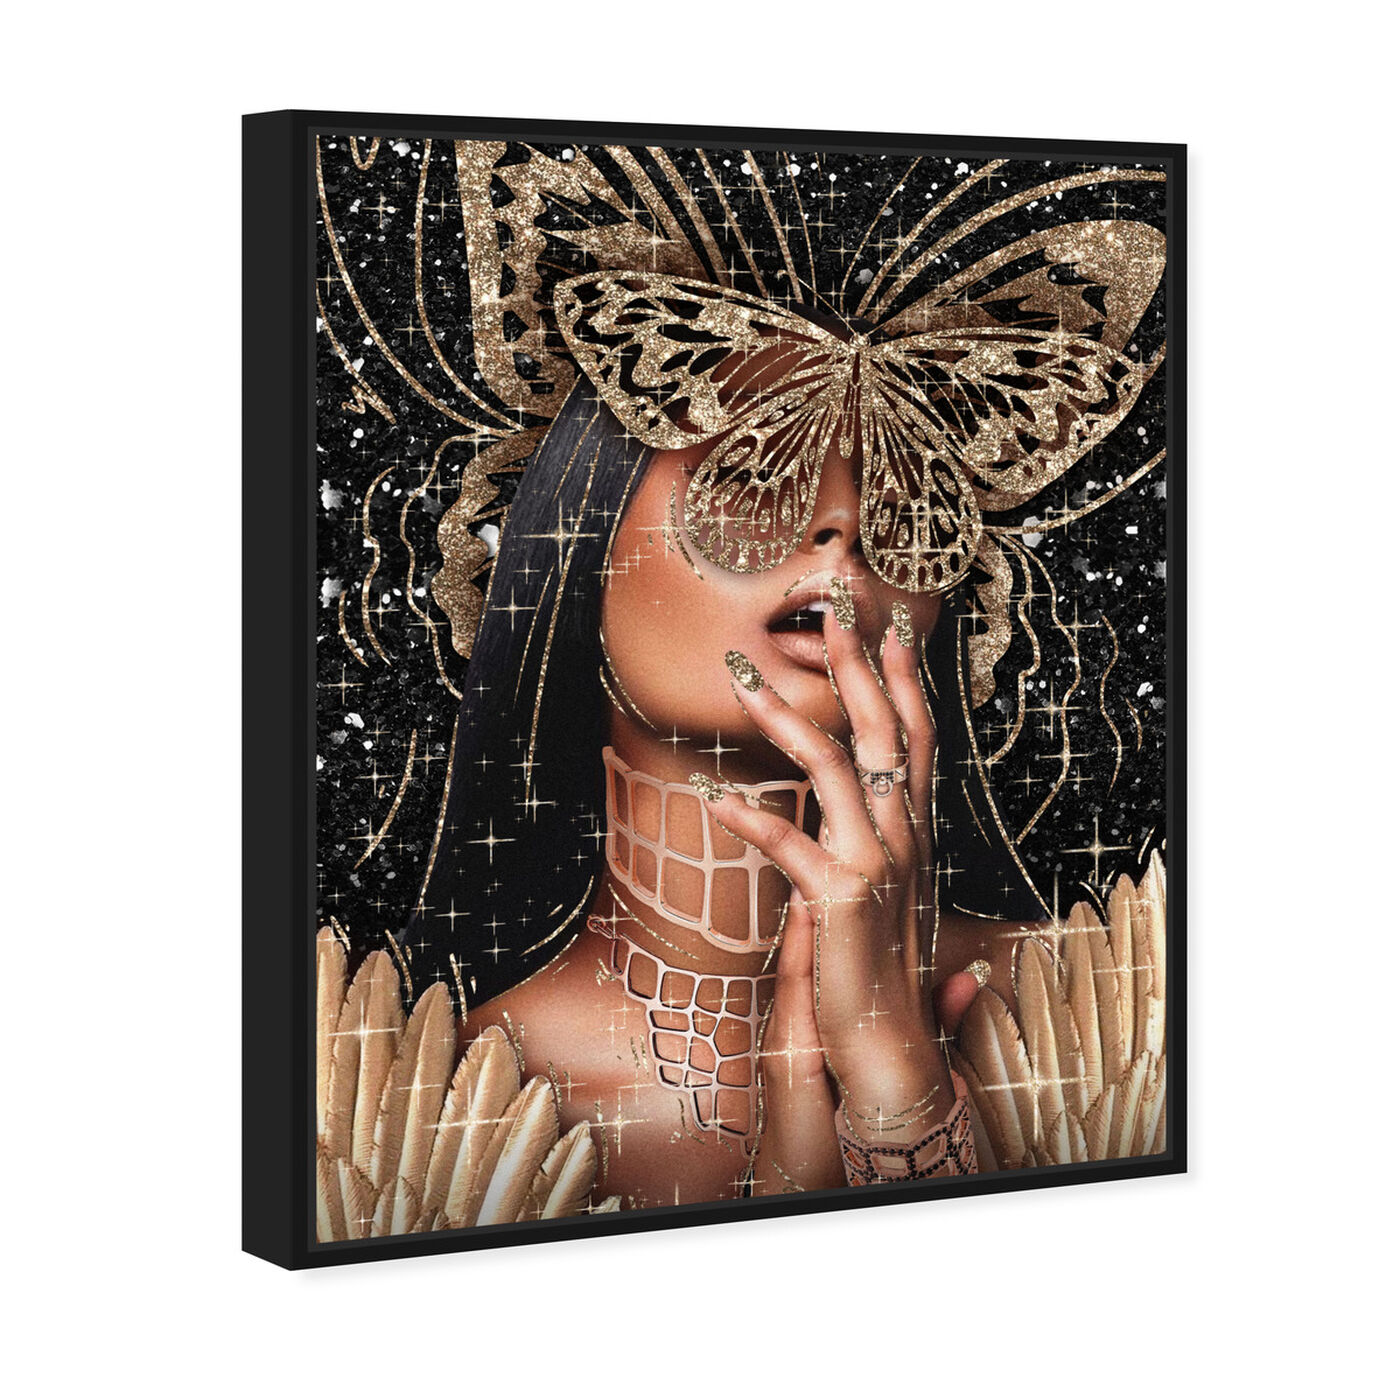 Angled view of Golden Angela featuring fashion and glam and portraits art.